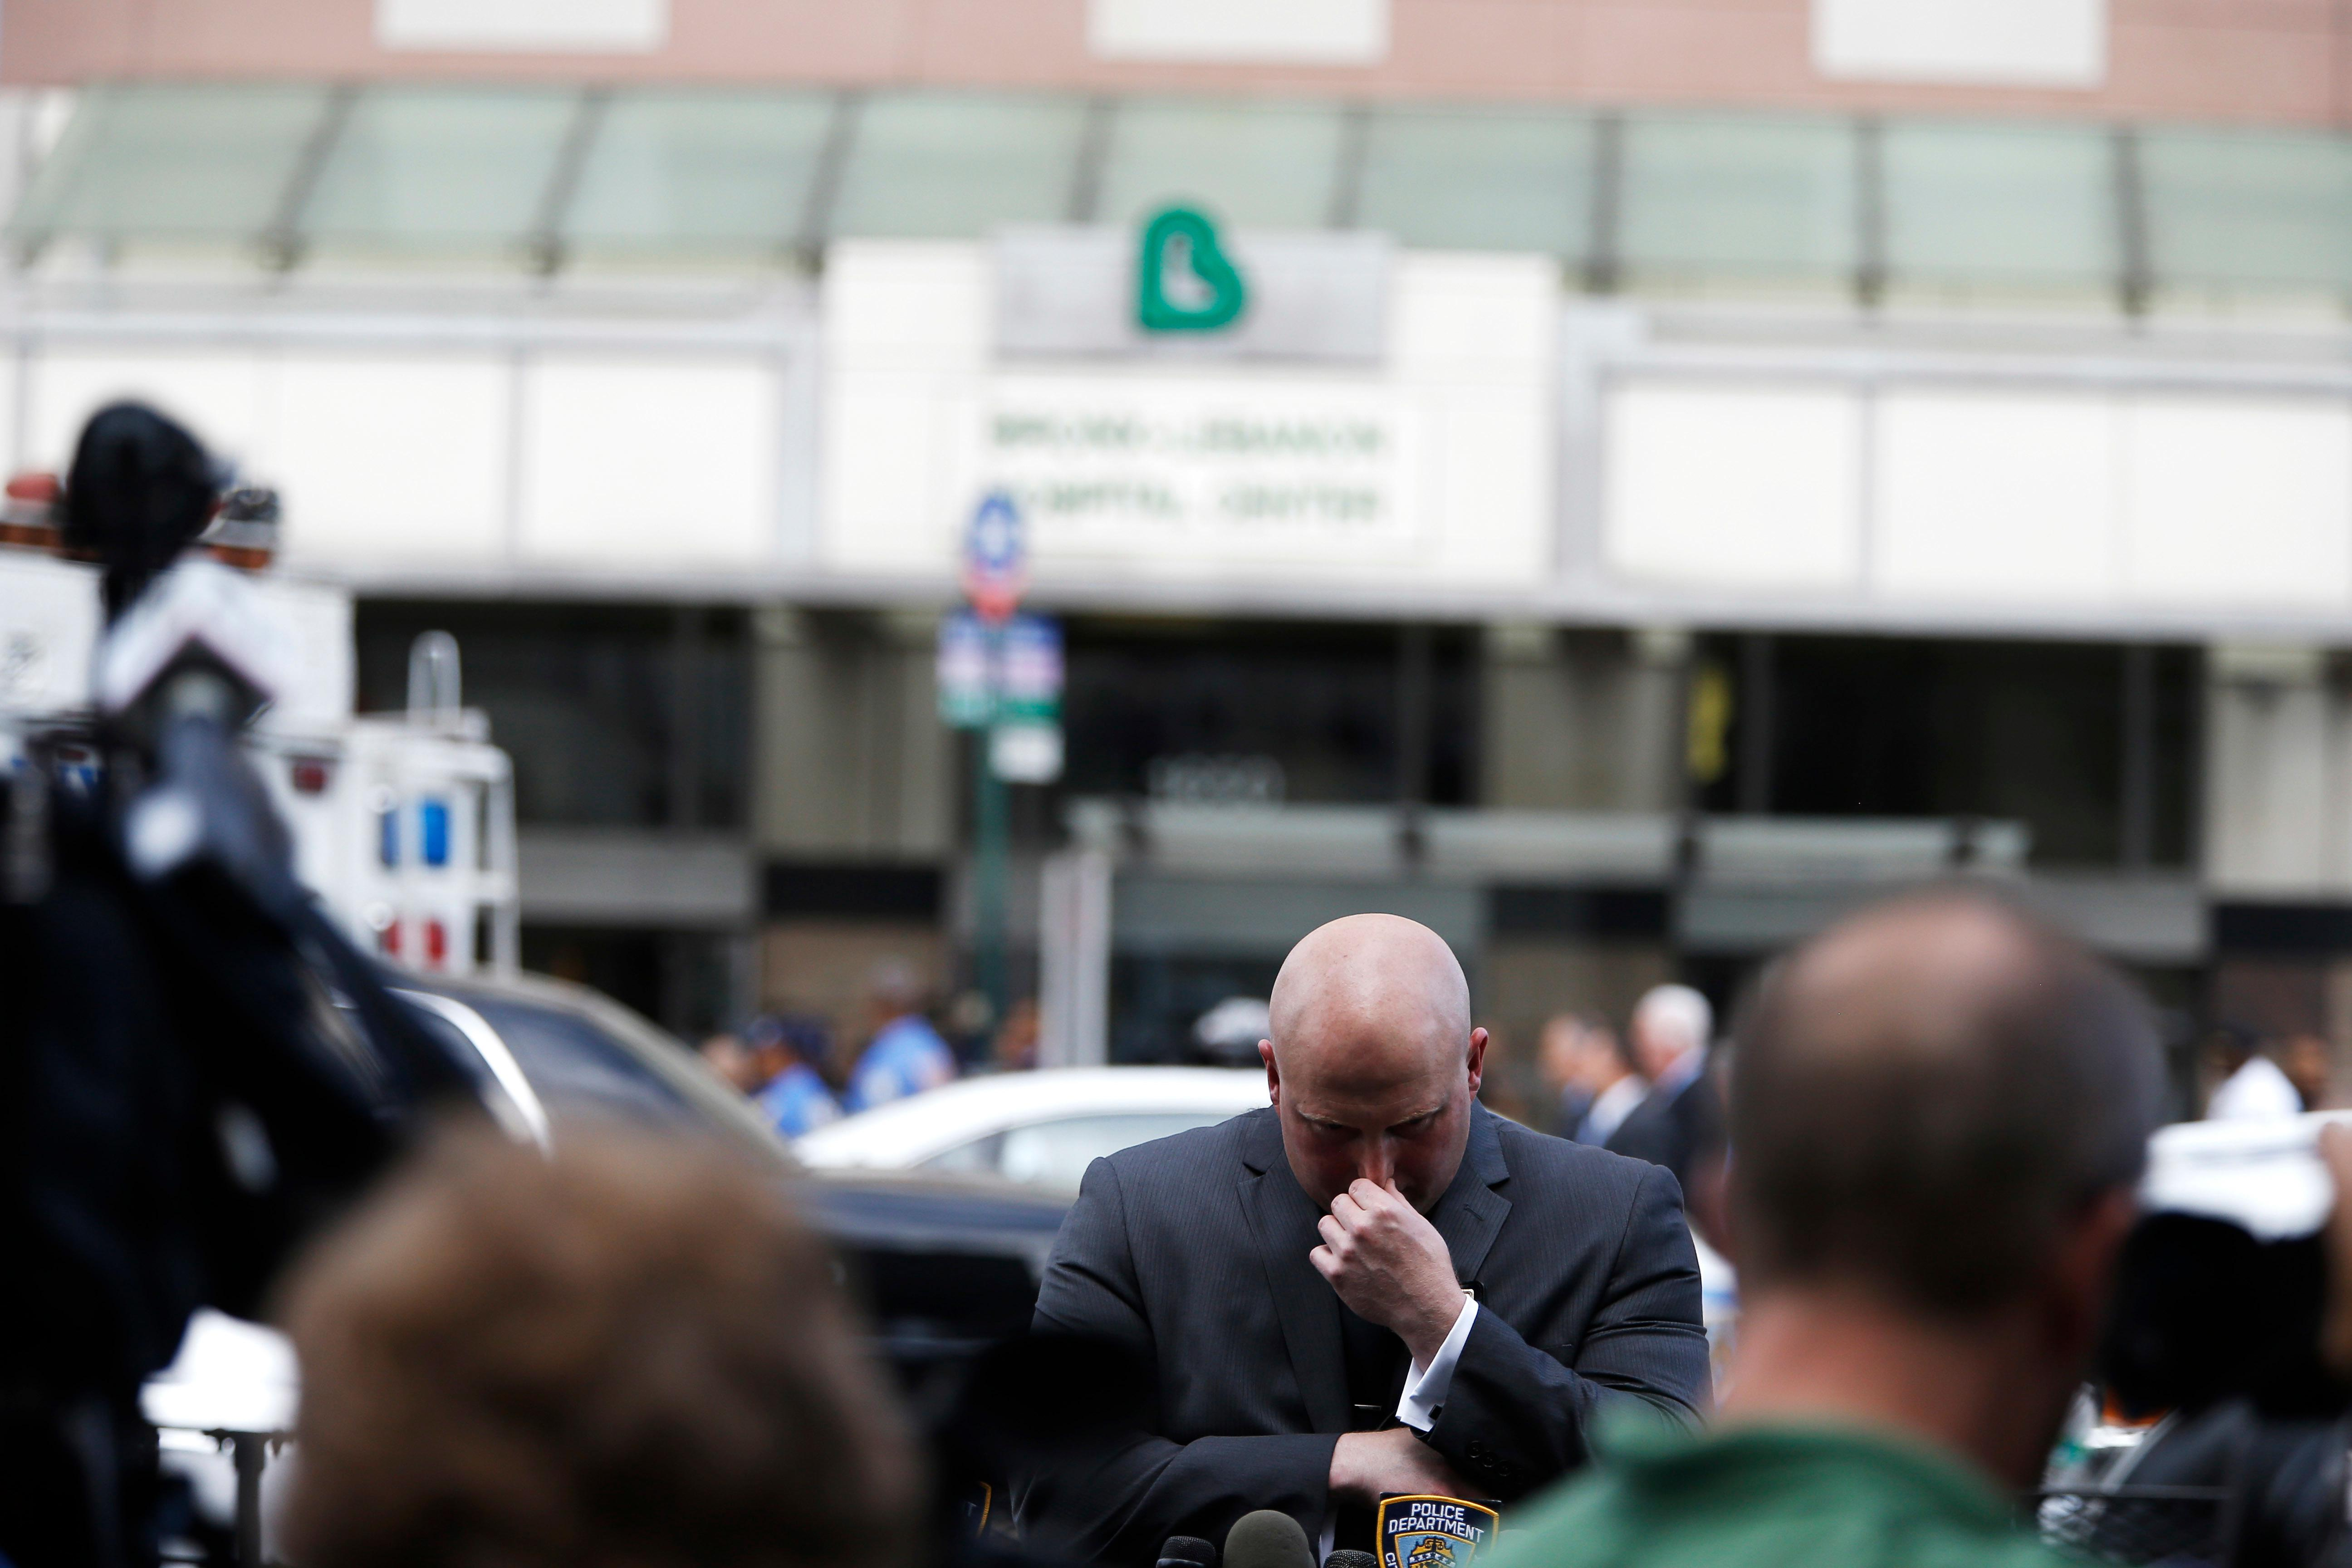 NYPD Spokesperson Mike Debonis before a press conference at the scene of shooting killing one and wounding six others at Bronx Lebanon Hospital Center Friday, June 30, 2017, in New York. (AP Photo/Michael Noble)